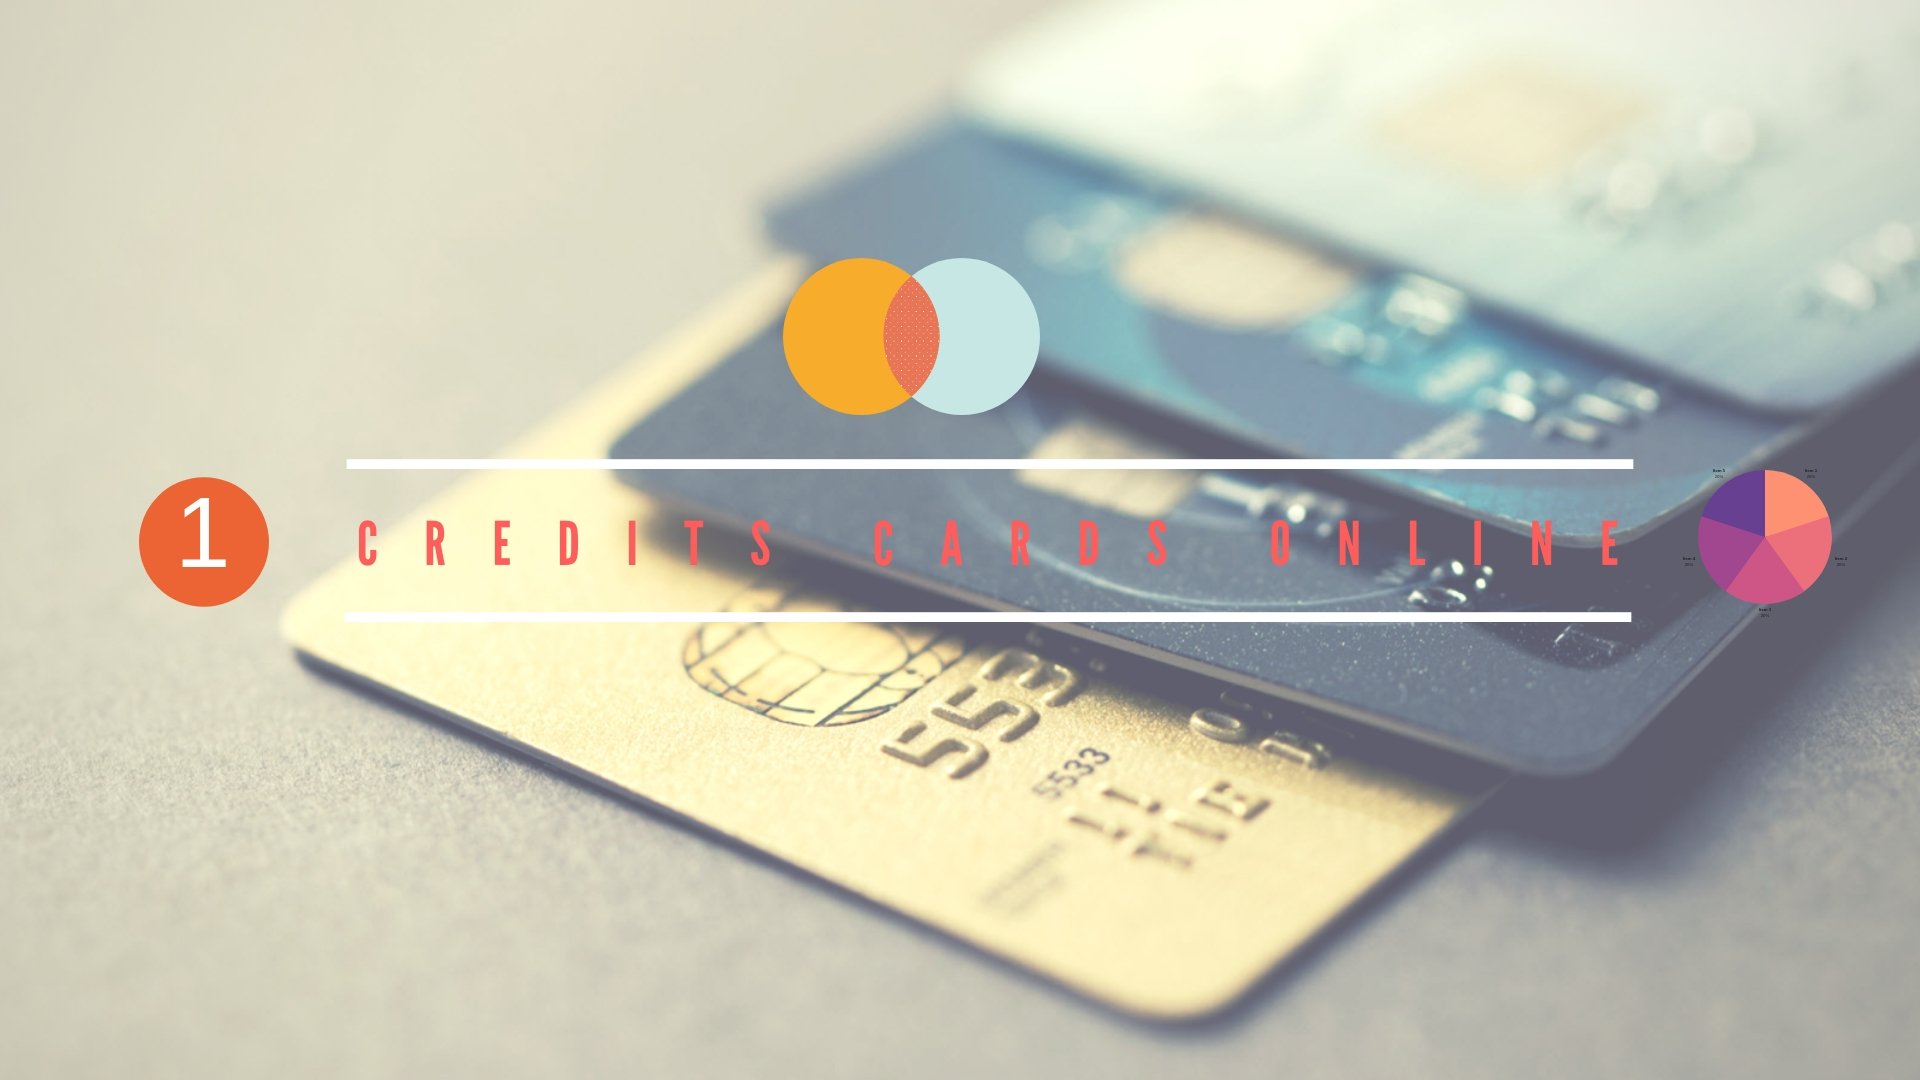 credits cards online